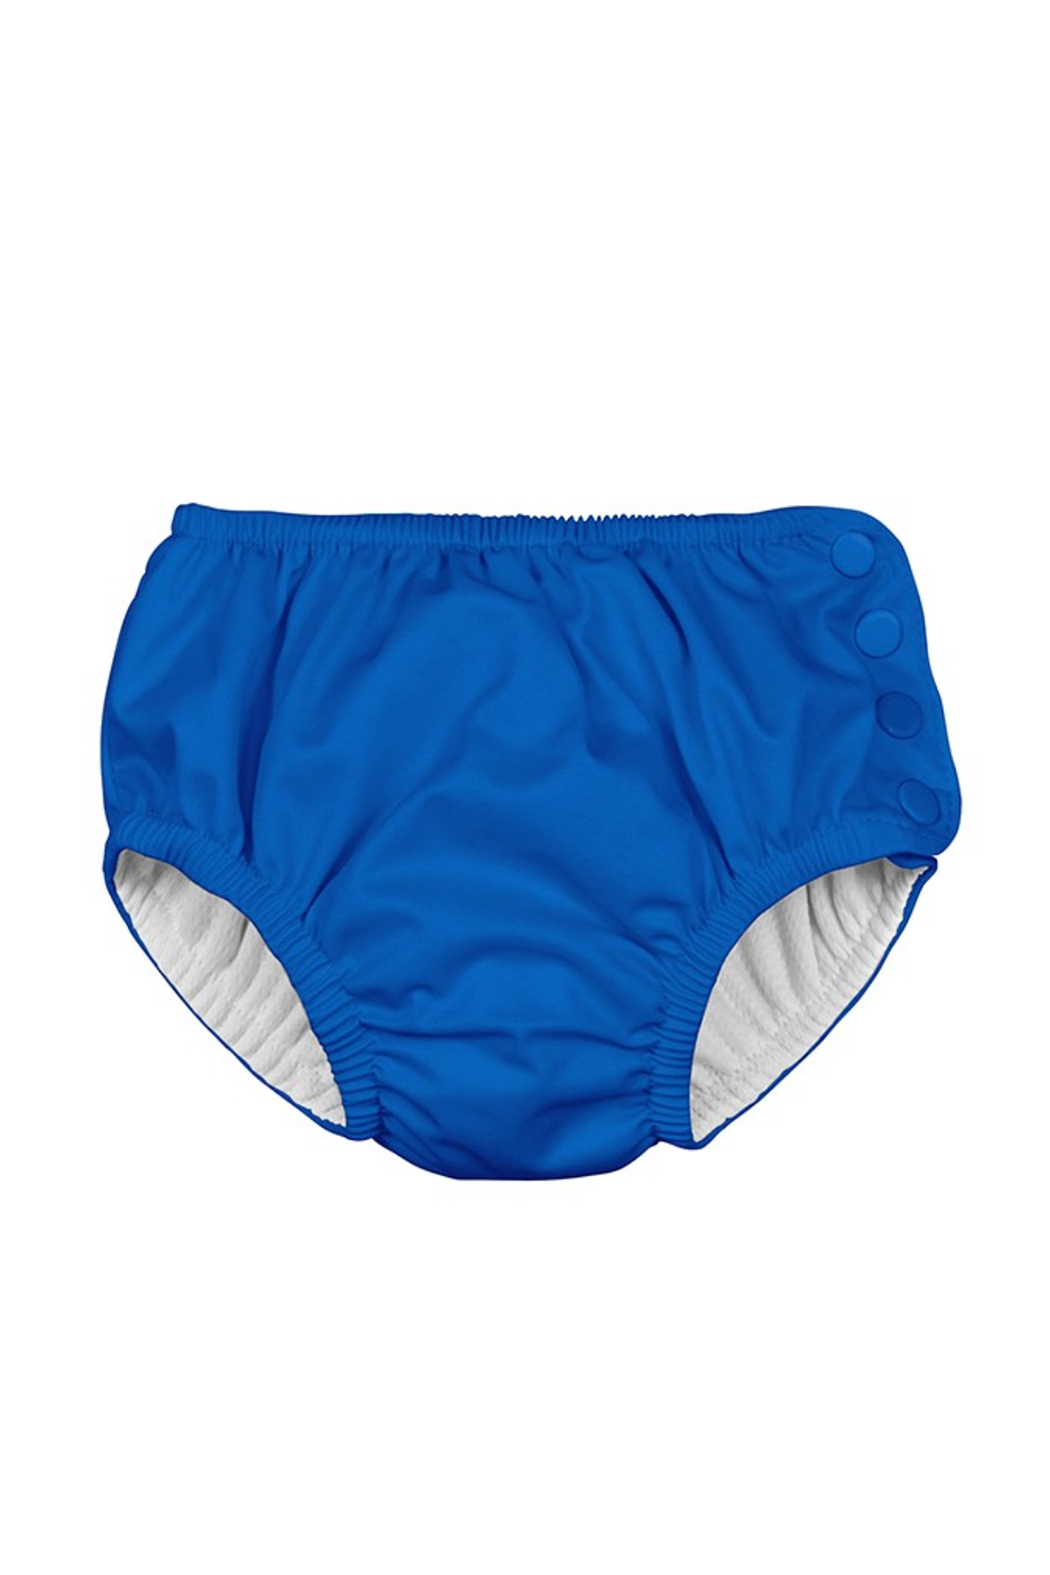 Iplay Snap Reusable Absorbent Swim Diaper - Front Full Image